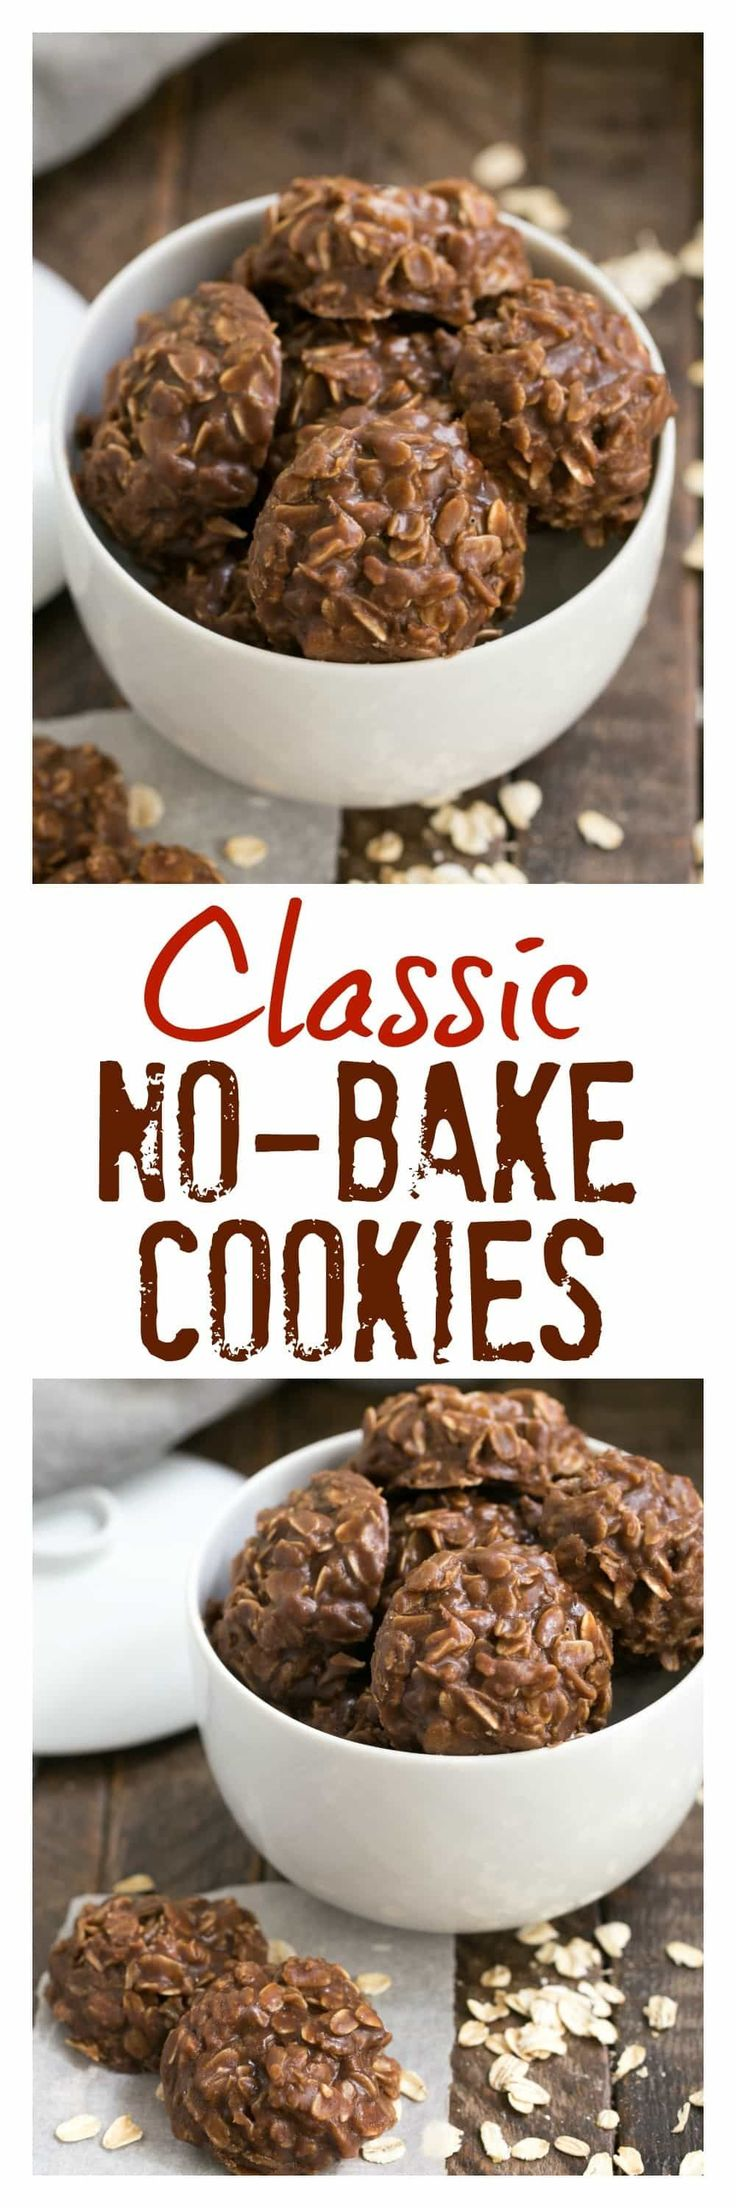 Classic Chocolate Peanut Butter No Bake Cookies | SO easy and always a hit! Plus no oven needed! #nobake #cookiessk